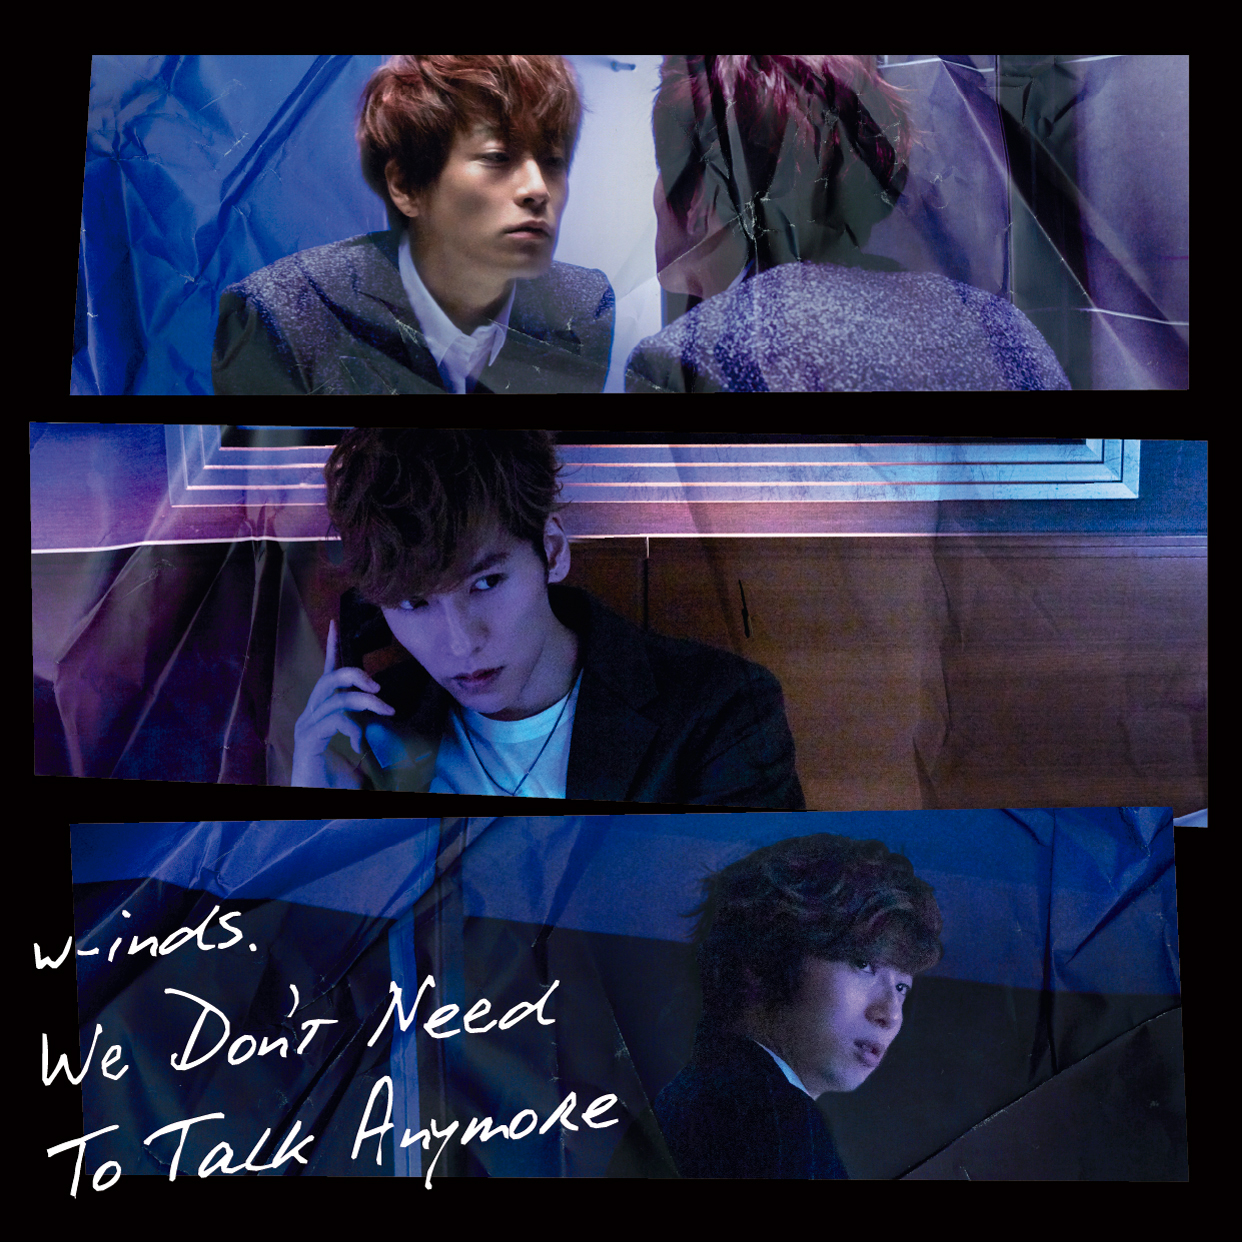 w-inds.「We Don't Need To Talk Anymore」 初回盤A